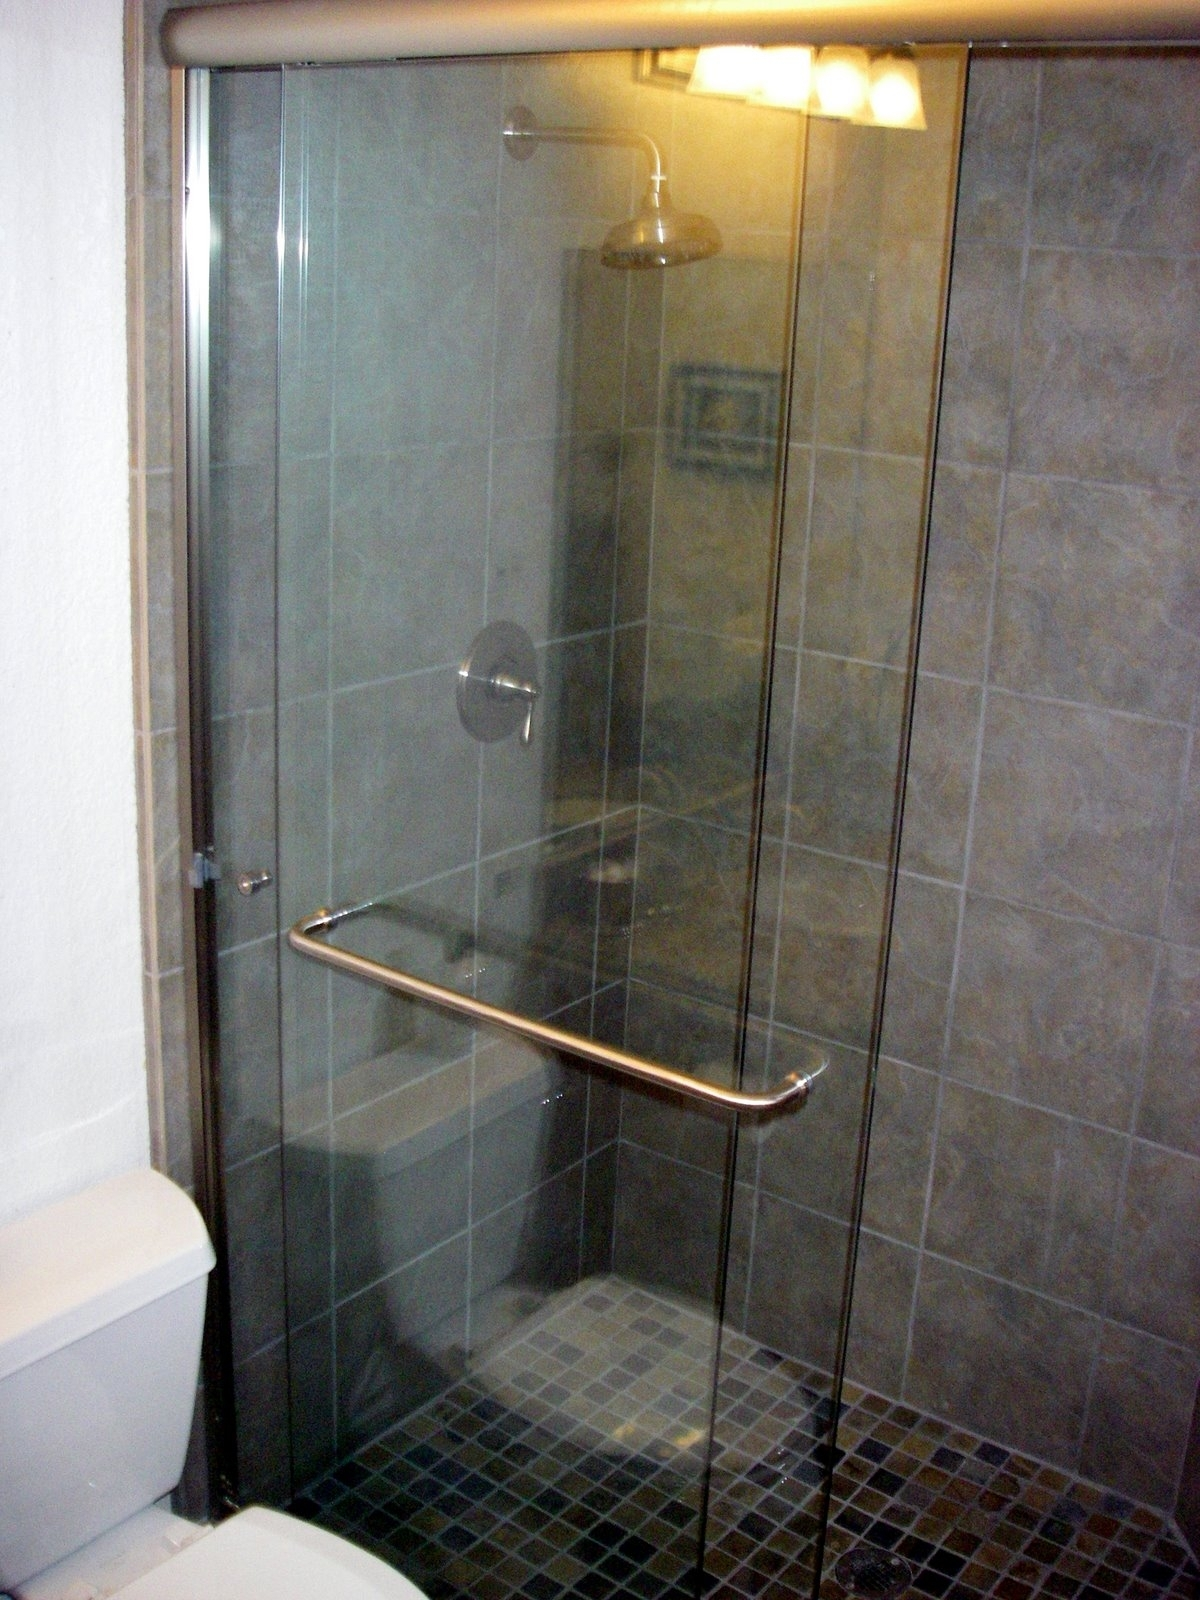 Acrylic Towel Bar For Shower Door